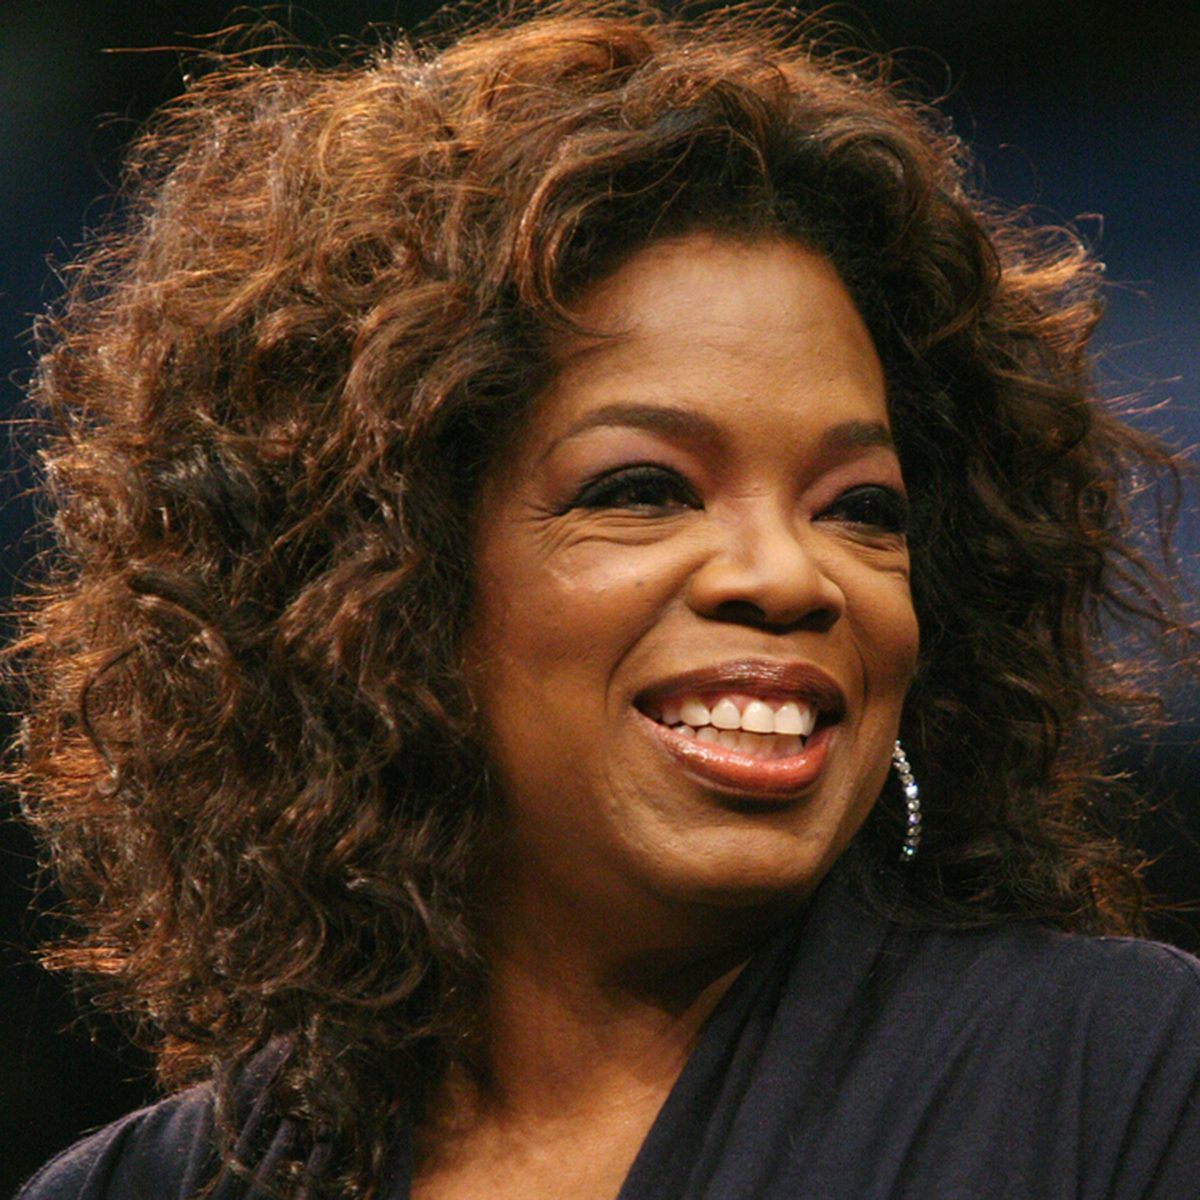 Oprah Winfrey campaigns for Democratic Presidential candidate Barack Obama at UCLA in Los Angeles, California.